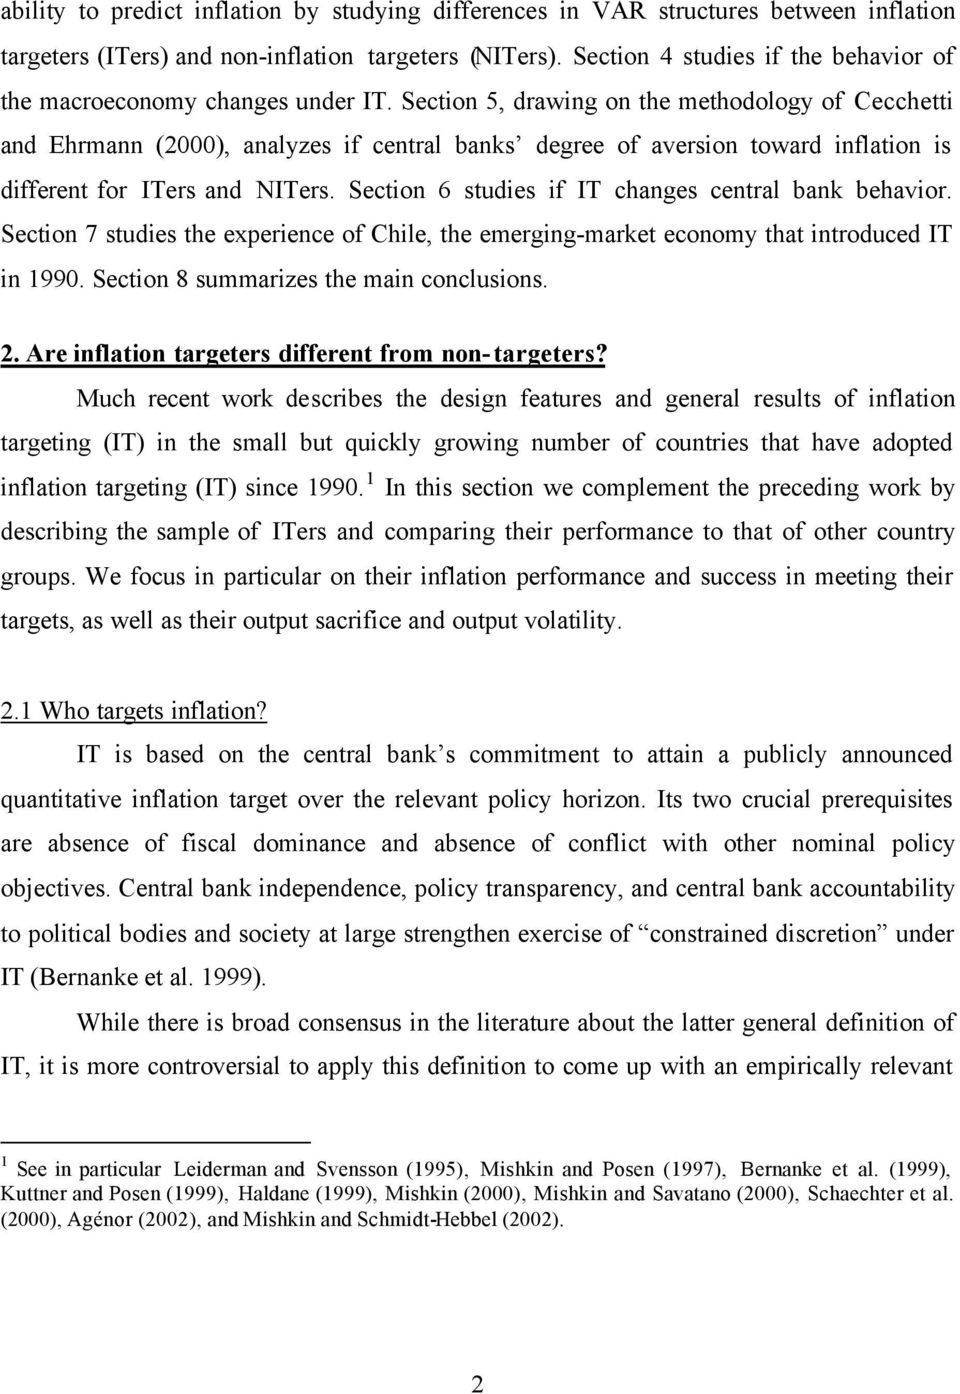 Section 5, drawing on the methodology of Cecchetti and Ehrmann (2000), analyzes if central banks degree of aversion toward inflation is different for ITers and NITers.